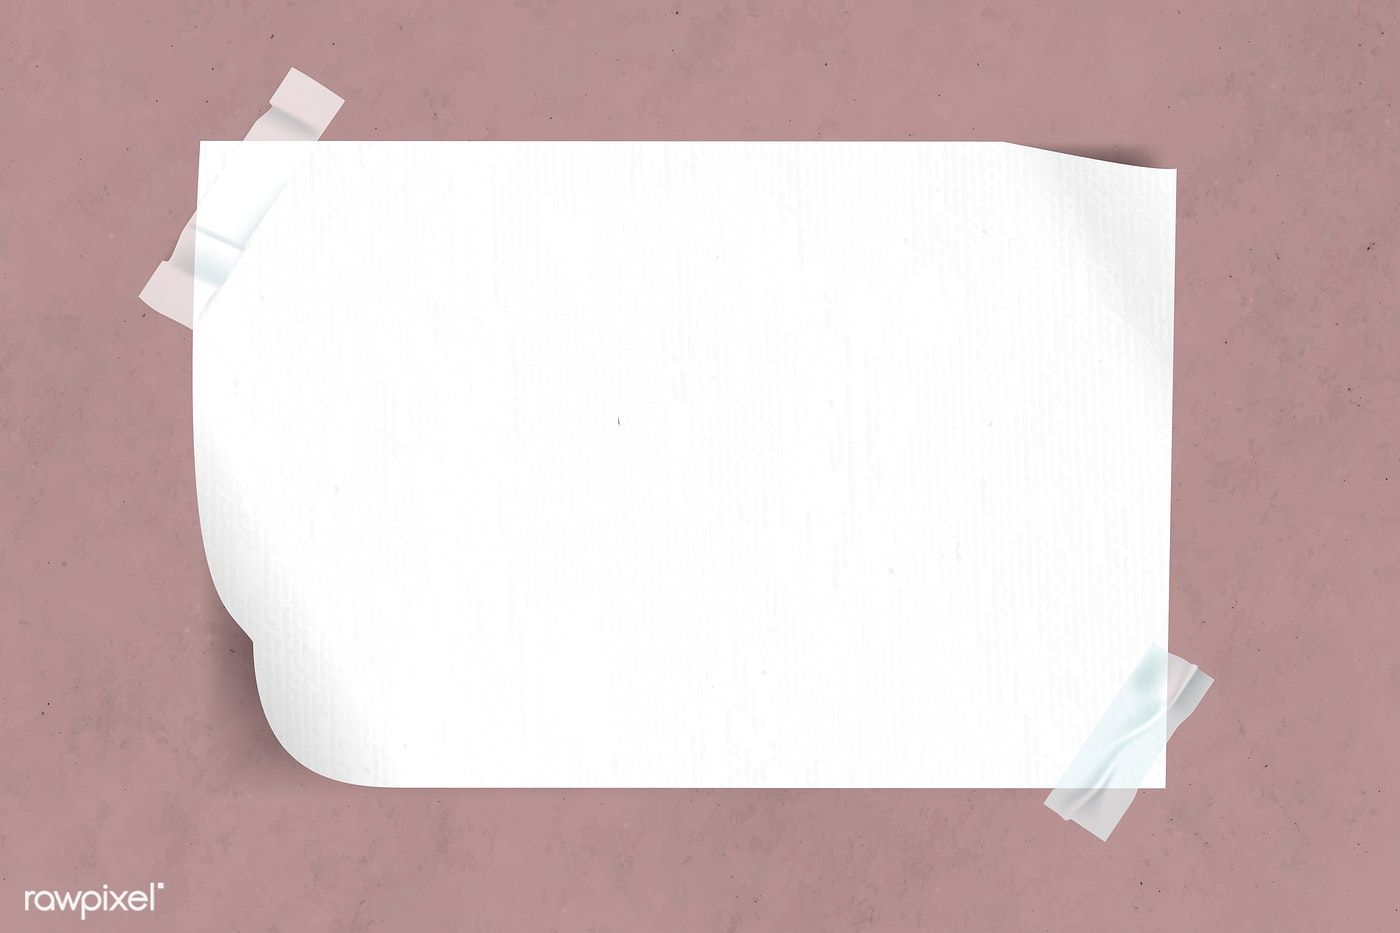 Download Premium Vector Of Blank White Paper Taped On Pink Background Paper Tape Paper Background Texture Powerpoint Background Design